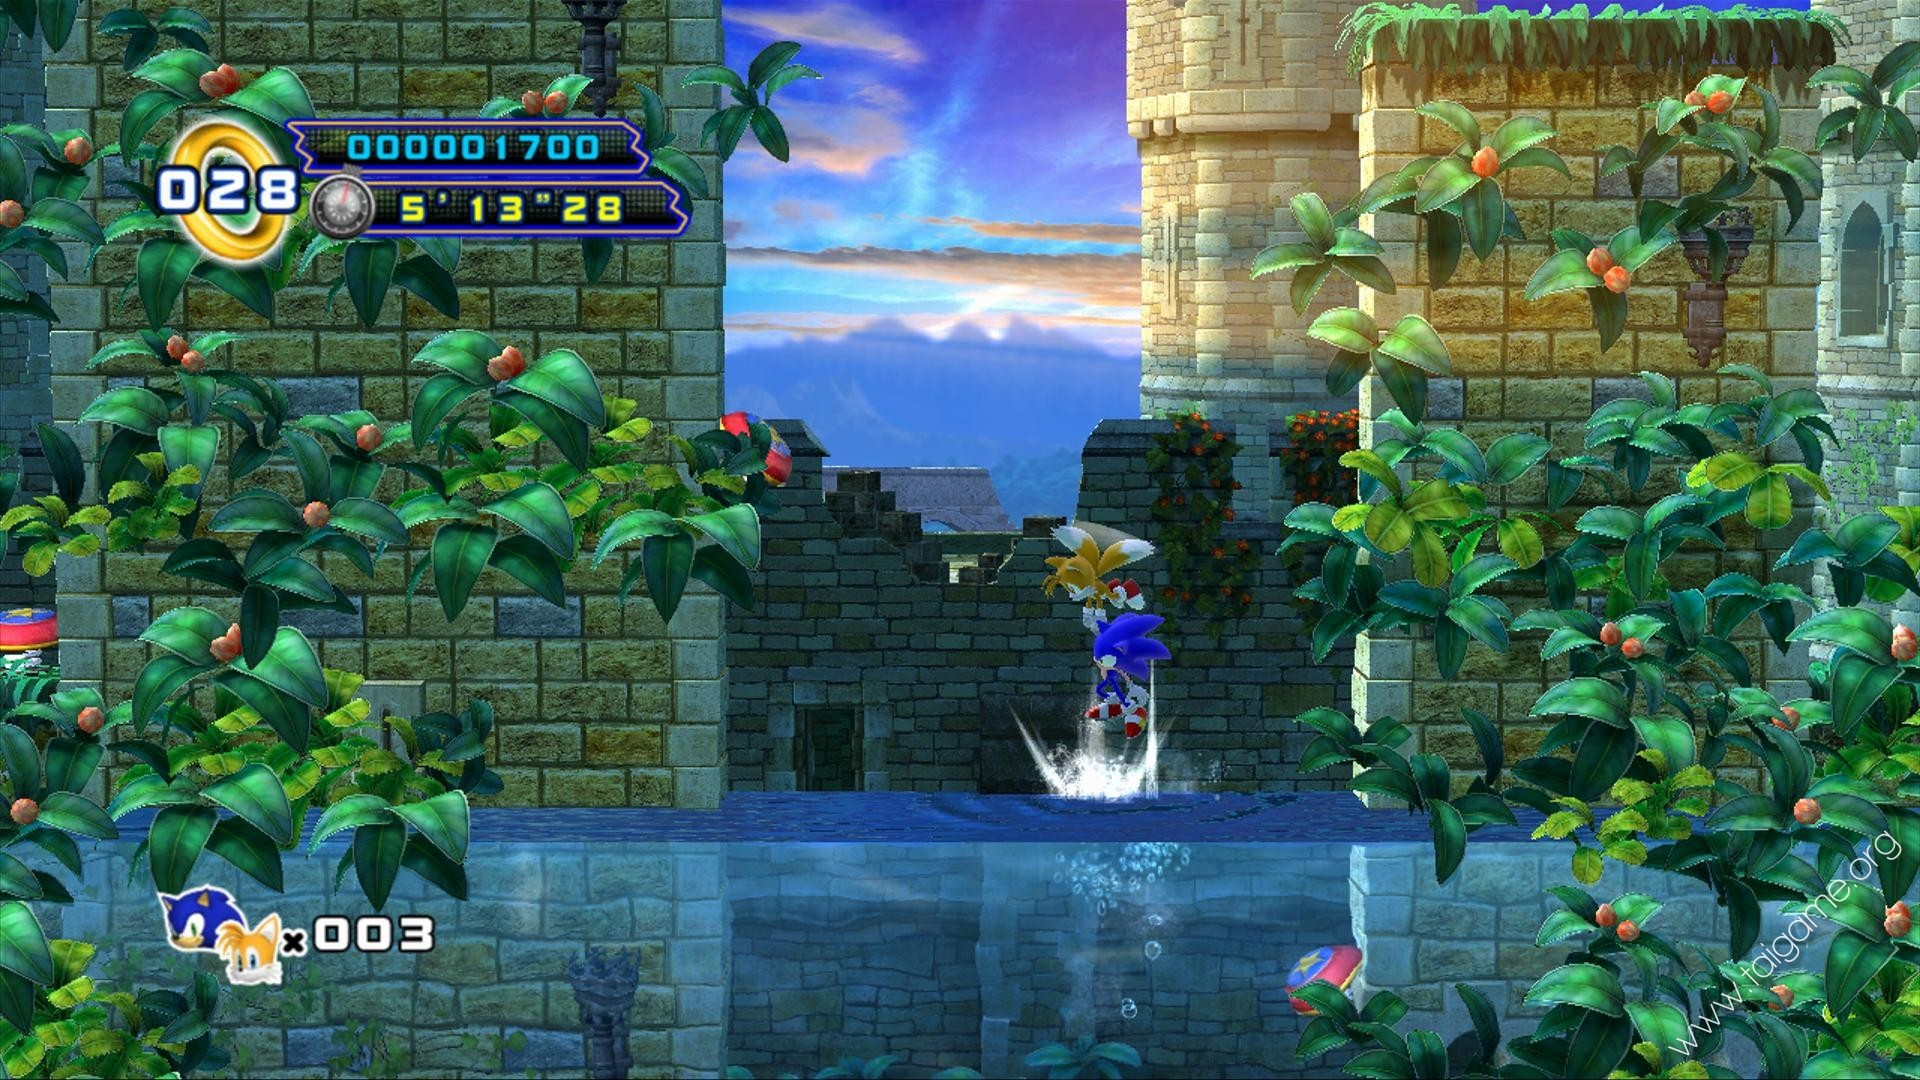 Sonic the hedgehog 4 game for pc